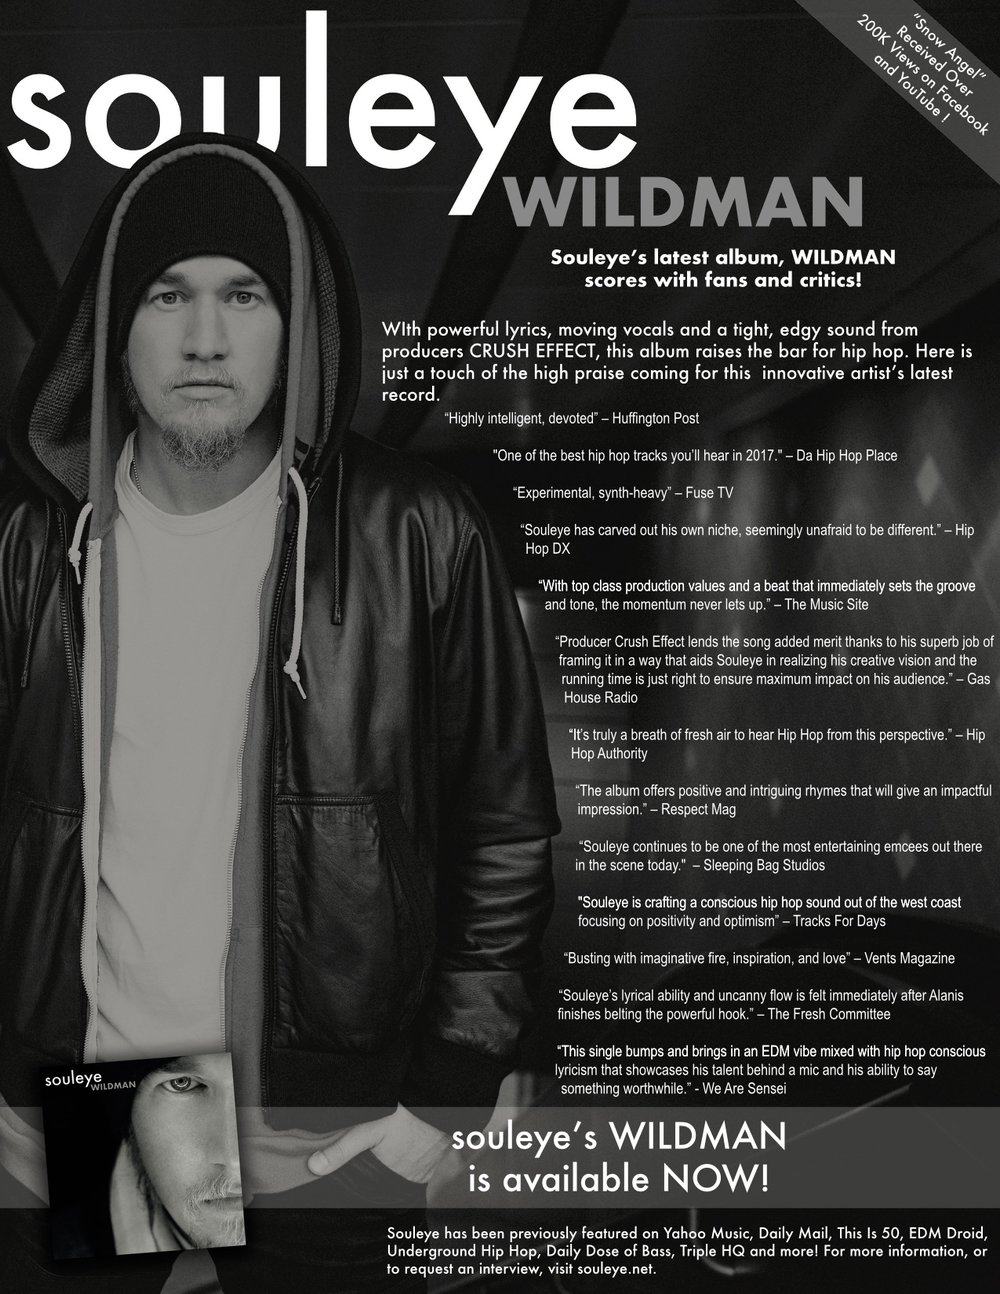 Souleye WIldman 1sheet_FINAL 2.jpg